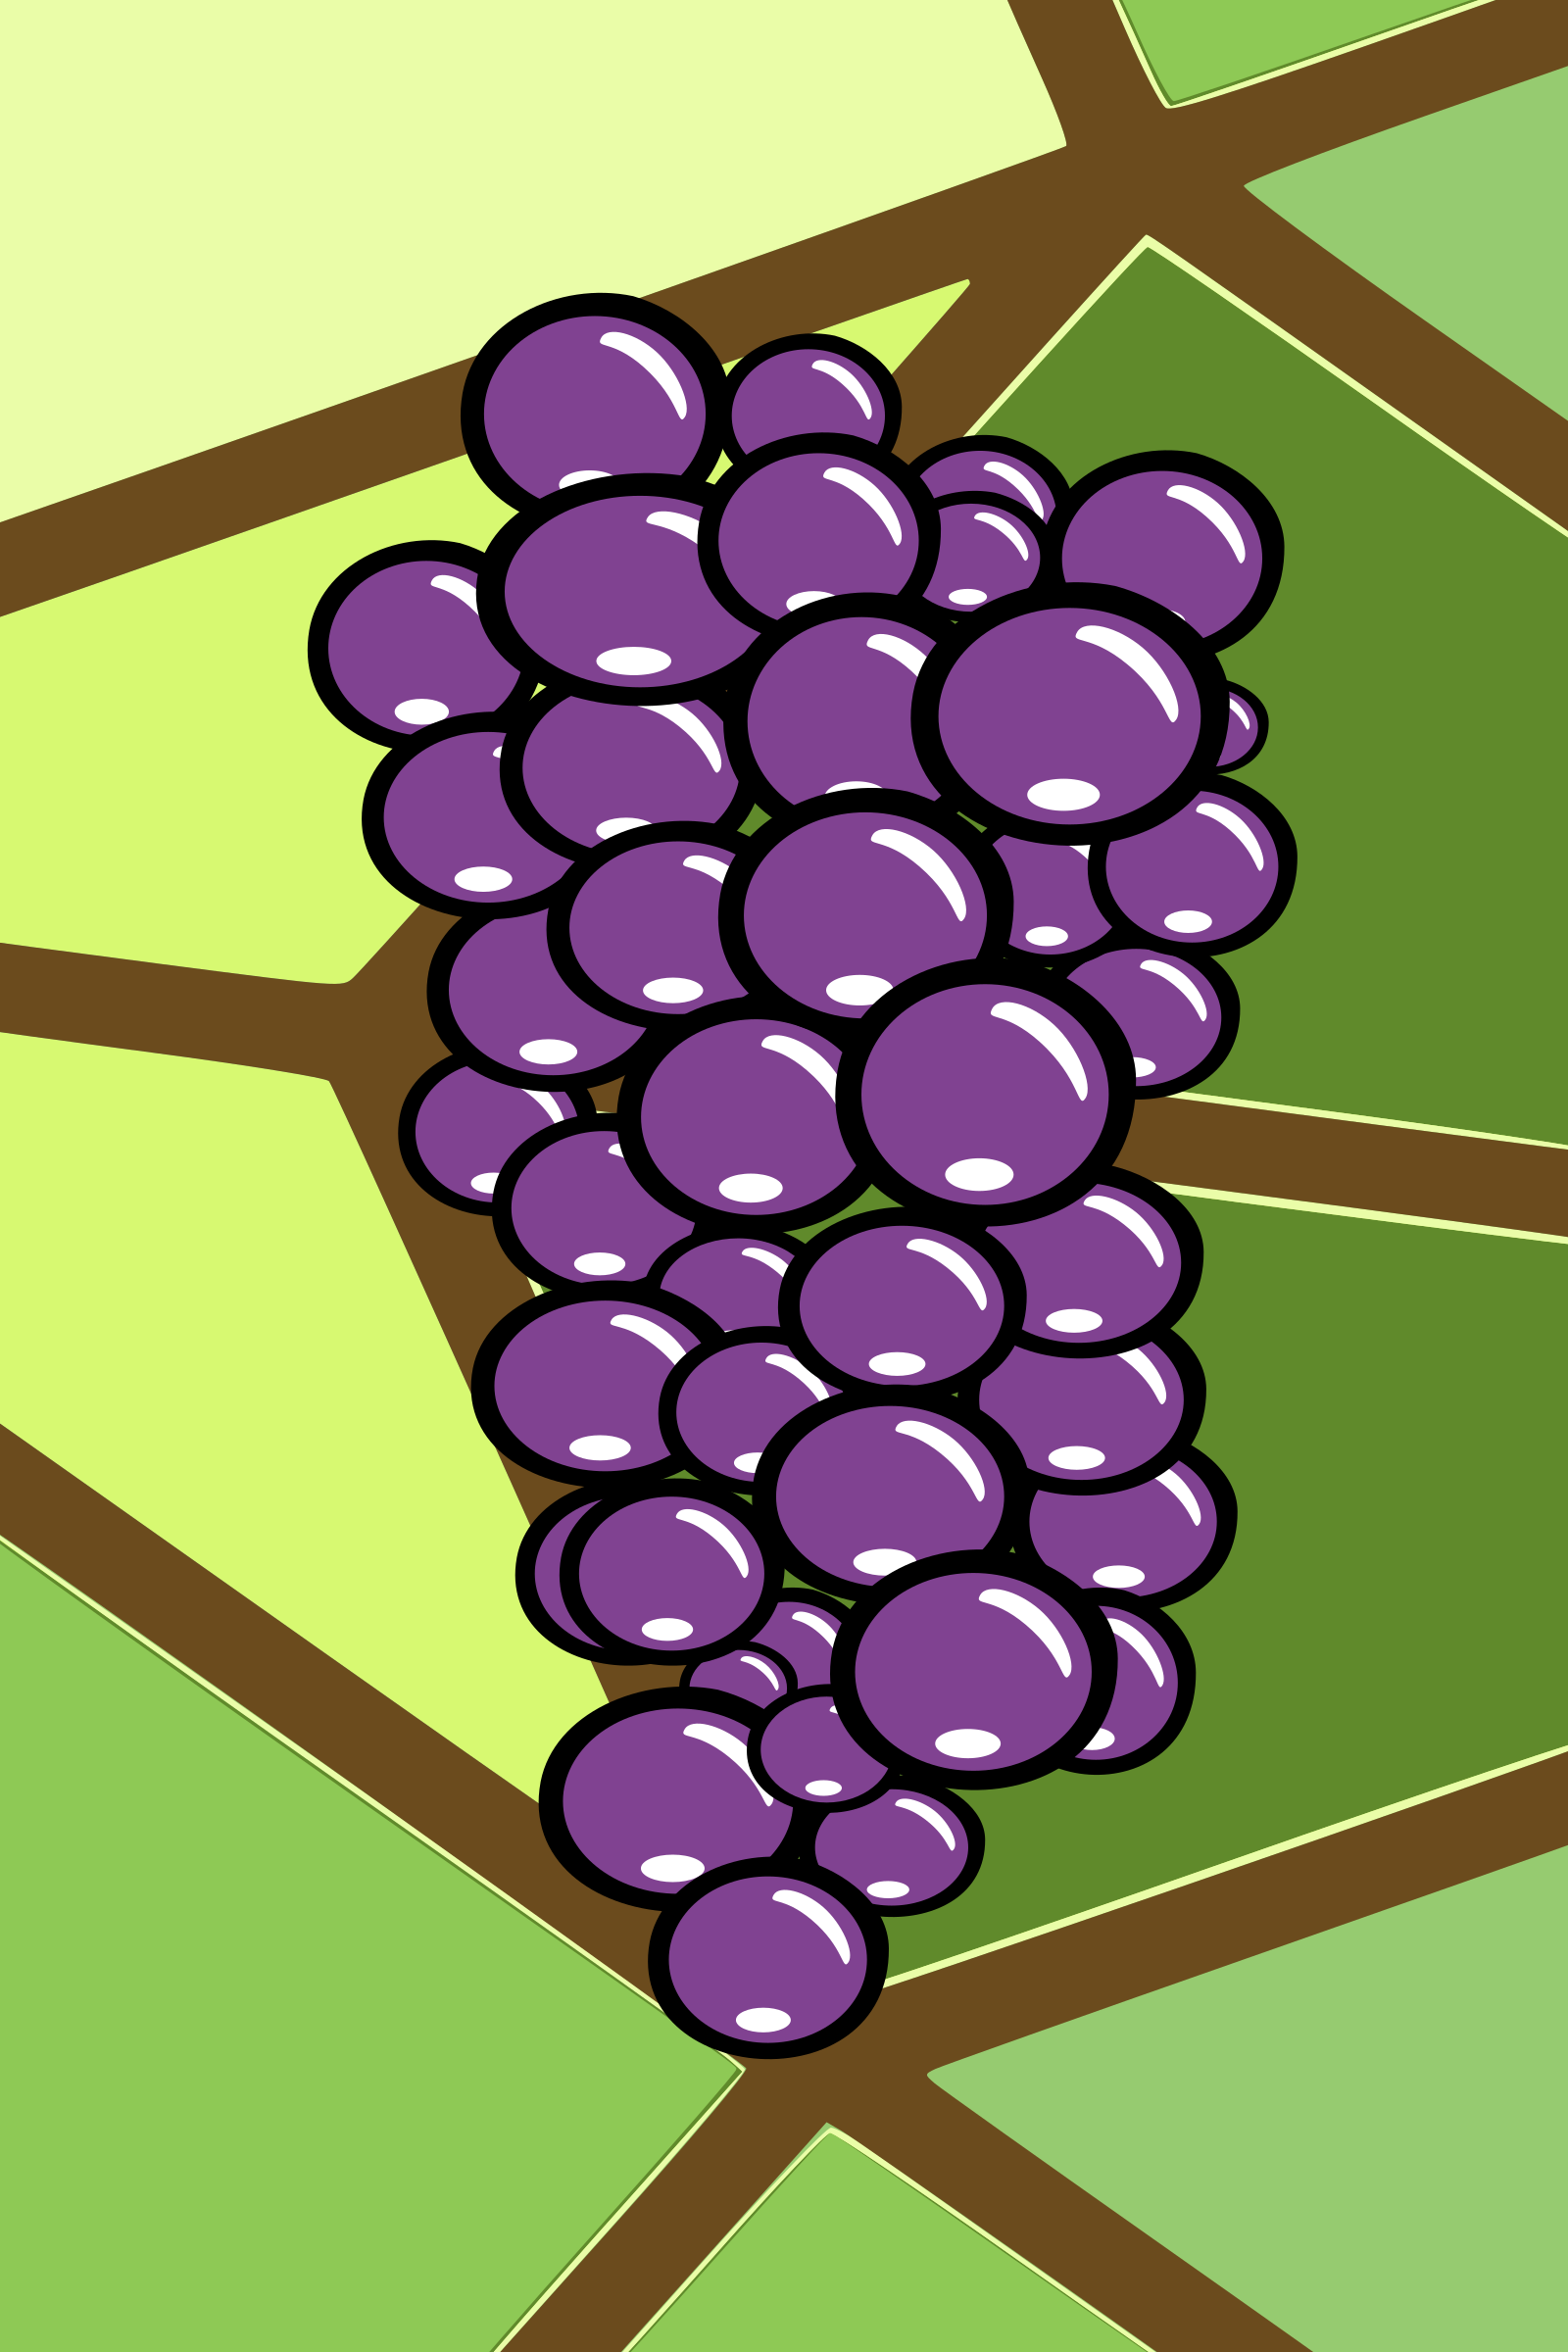 Grape by yamachem